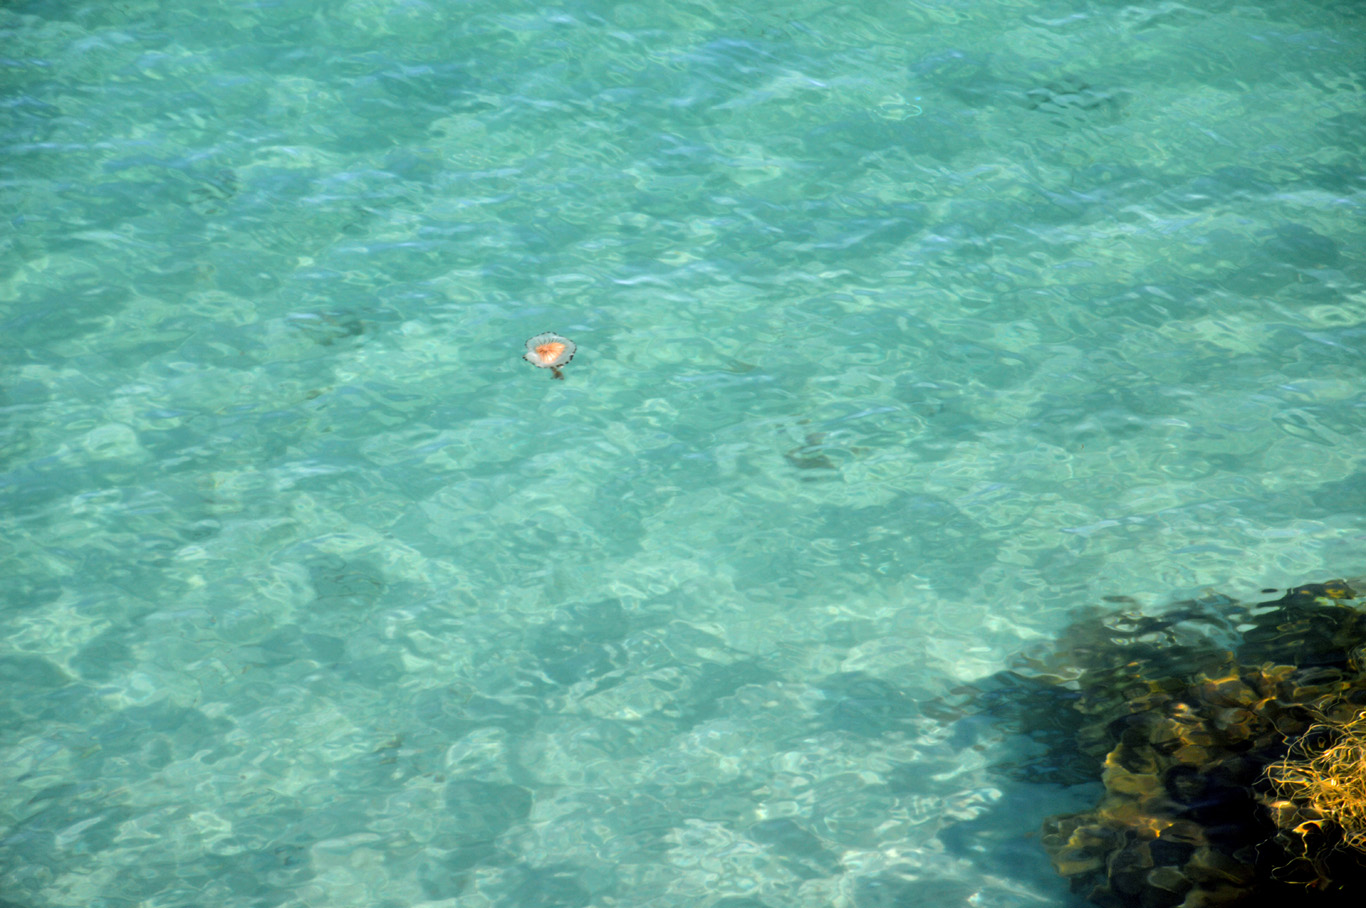 Jellyfish in clear waters